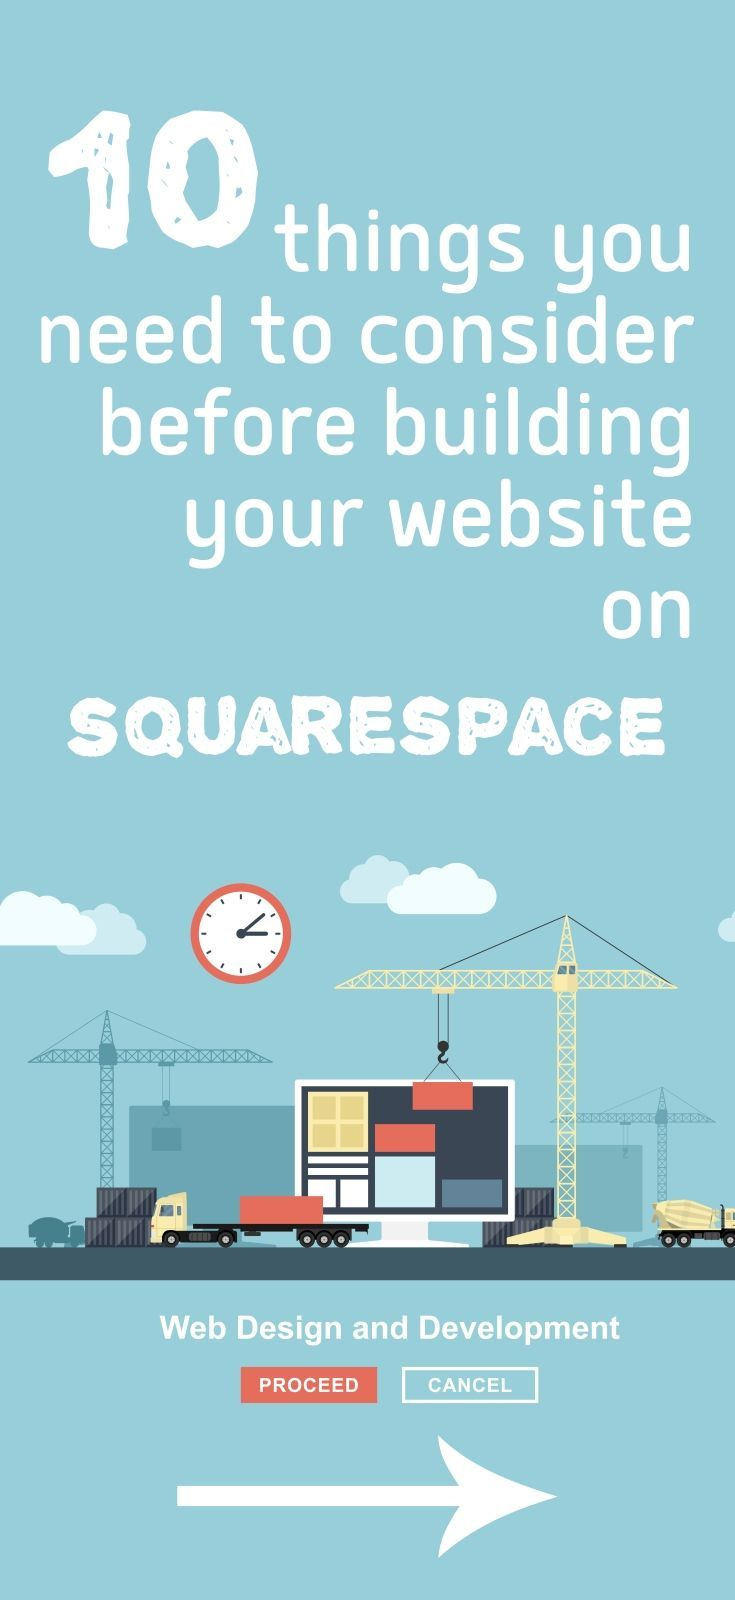 Before you begin your DIY website design project consider these 10 website features, plus the best alternatives to Squarespace for small businesses, entrepreneurs and solopreneurs.